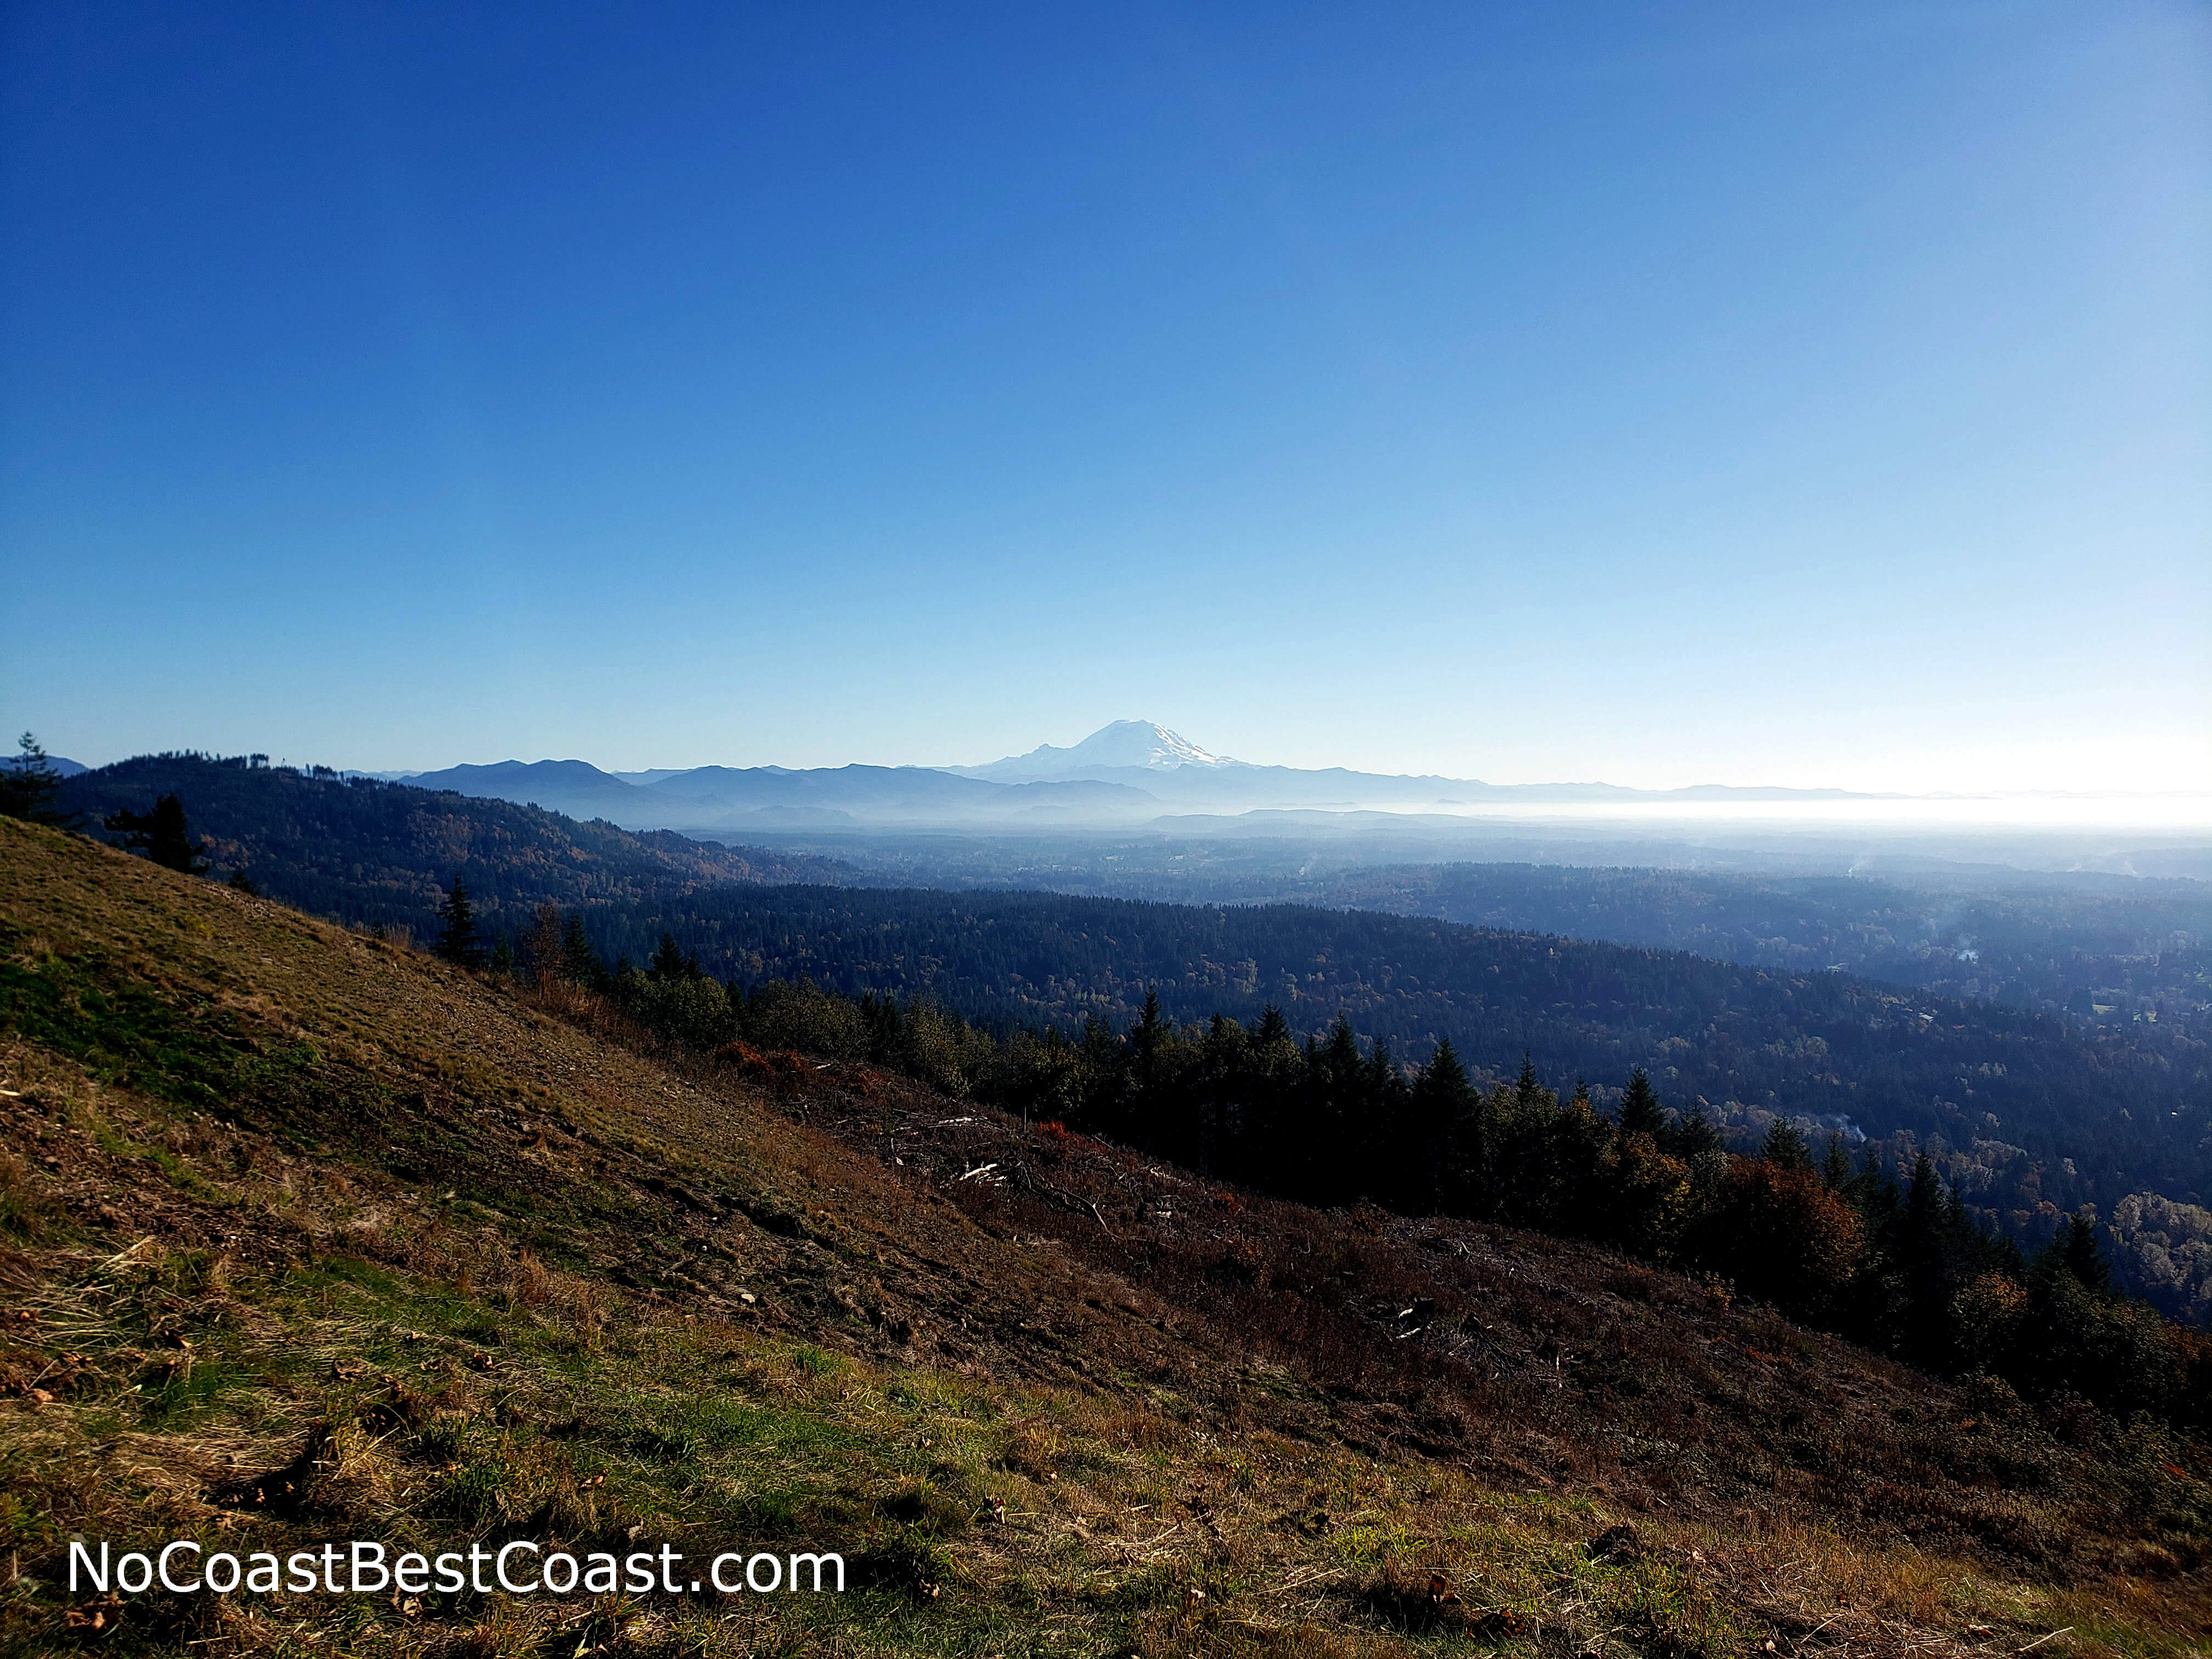 The amazing, unobstructed view of Mount Ranier from Poo Poo Point